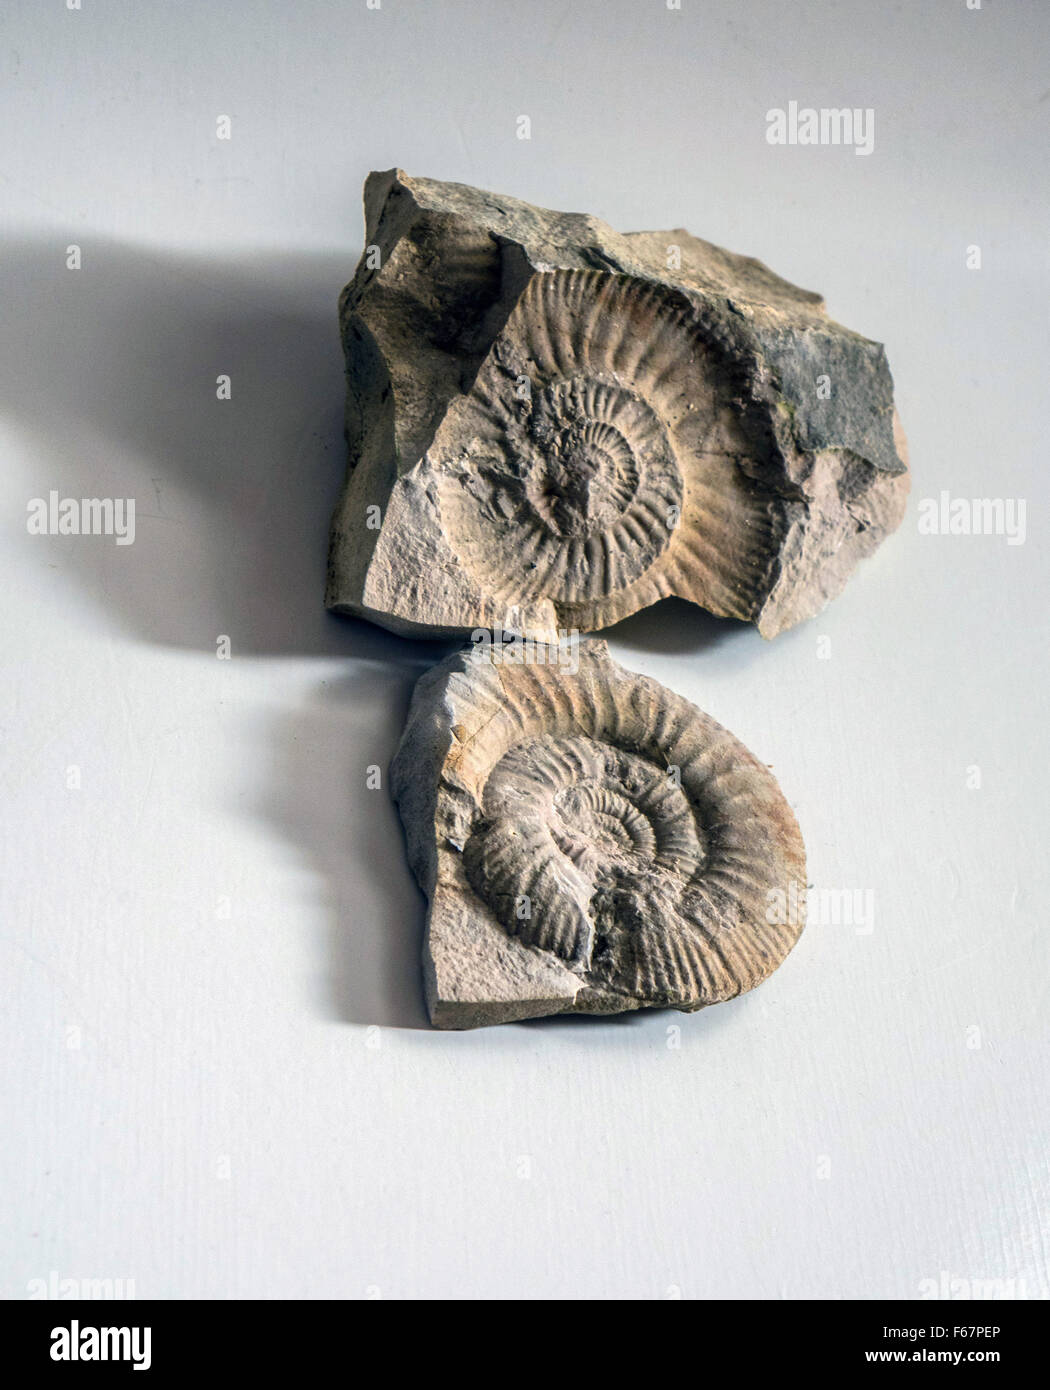 Ammonite fossil  and its cast in split rock - Stock Image